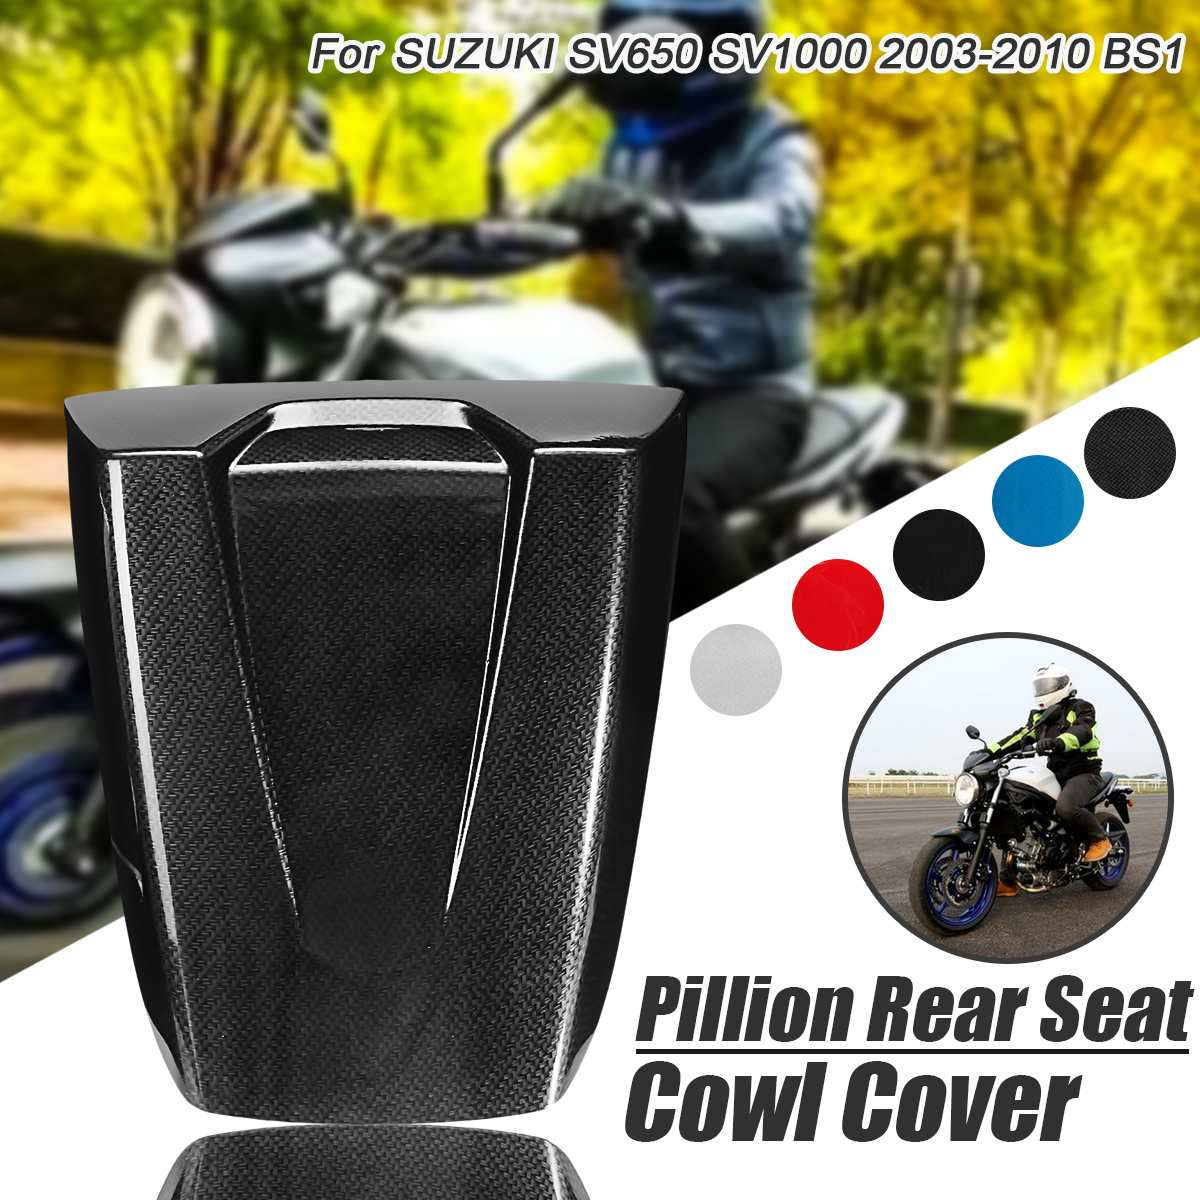 New Motorcycle Pit Dirt Bike Rear Seat Cover Guard <font><b>Fairing</b></font> Cowl For <font><b>Suzuki</b></font> SV650 <font><b>SV1000</b></font> 2003-2010 Rear Passenger Seat Cover Cowl image